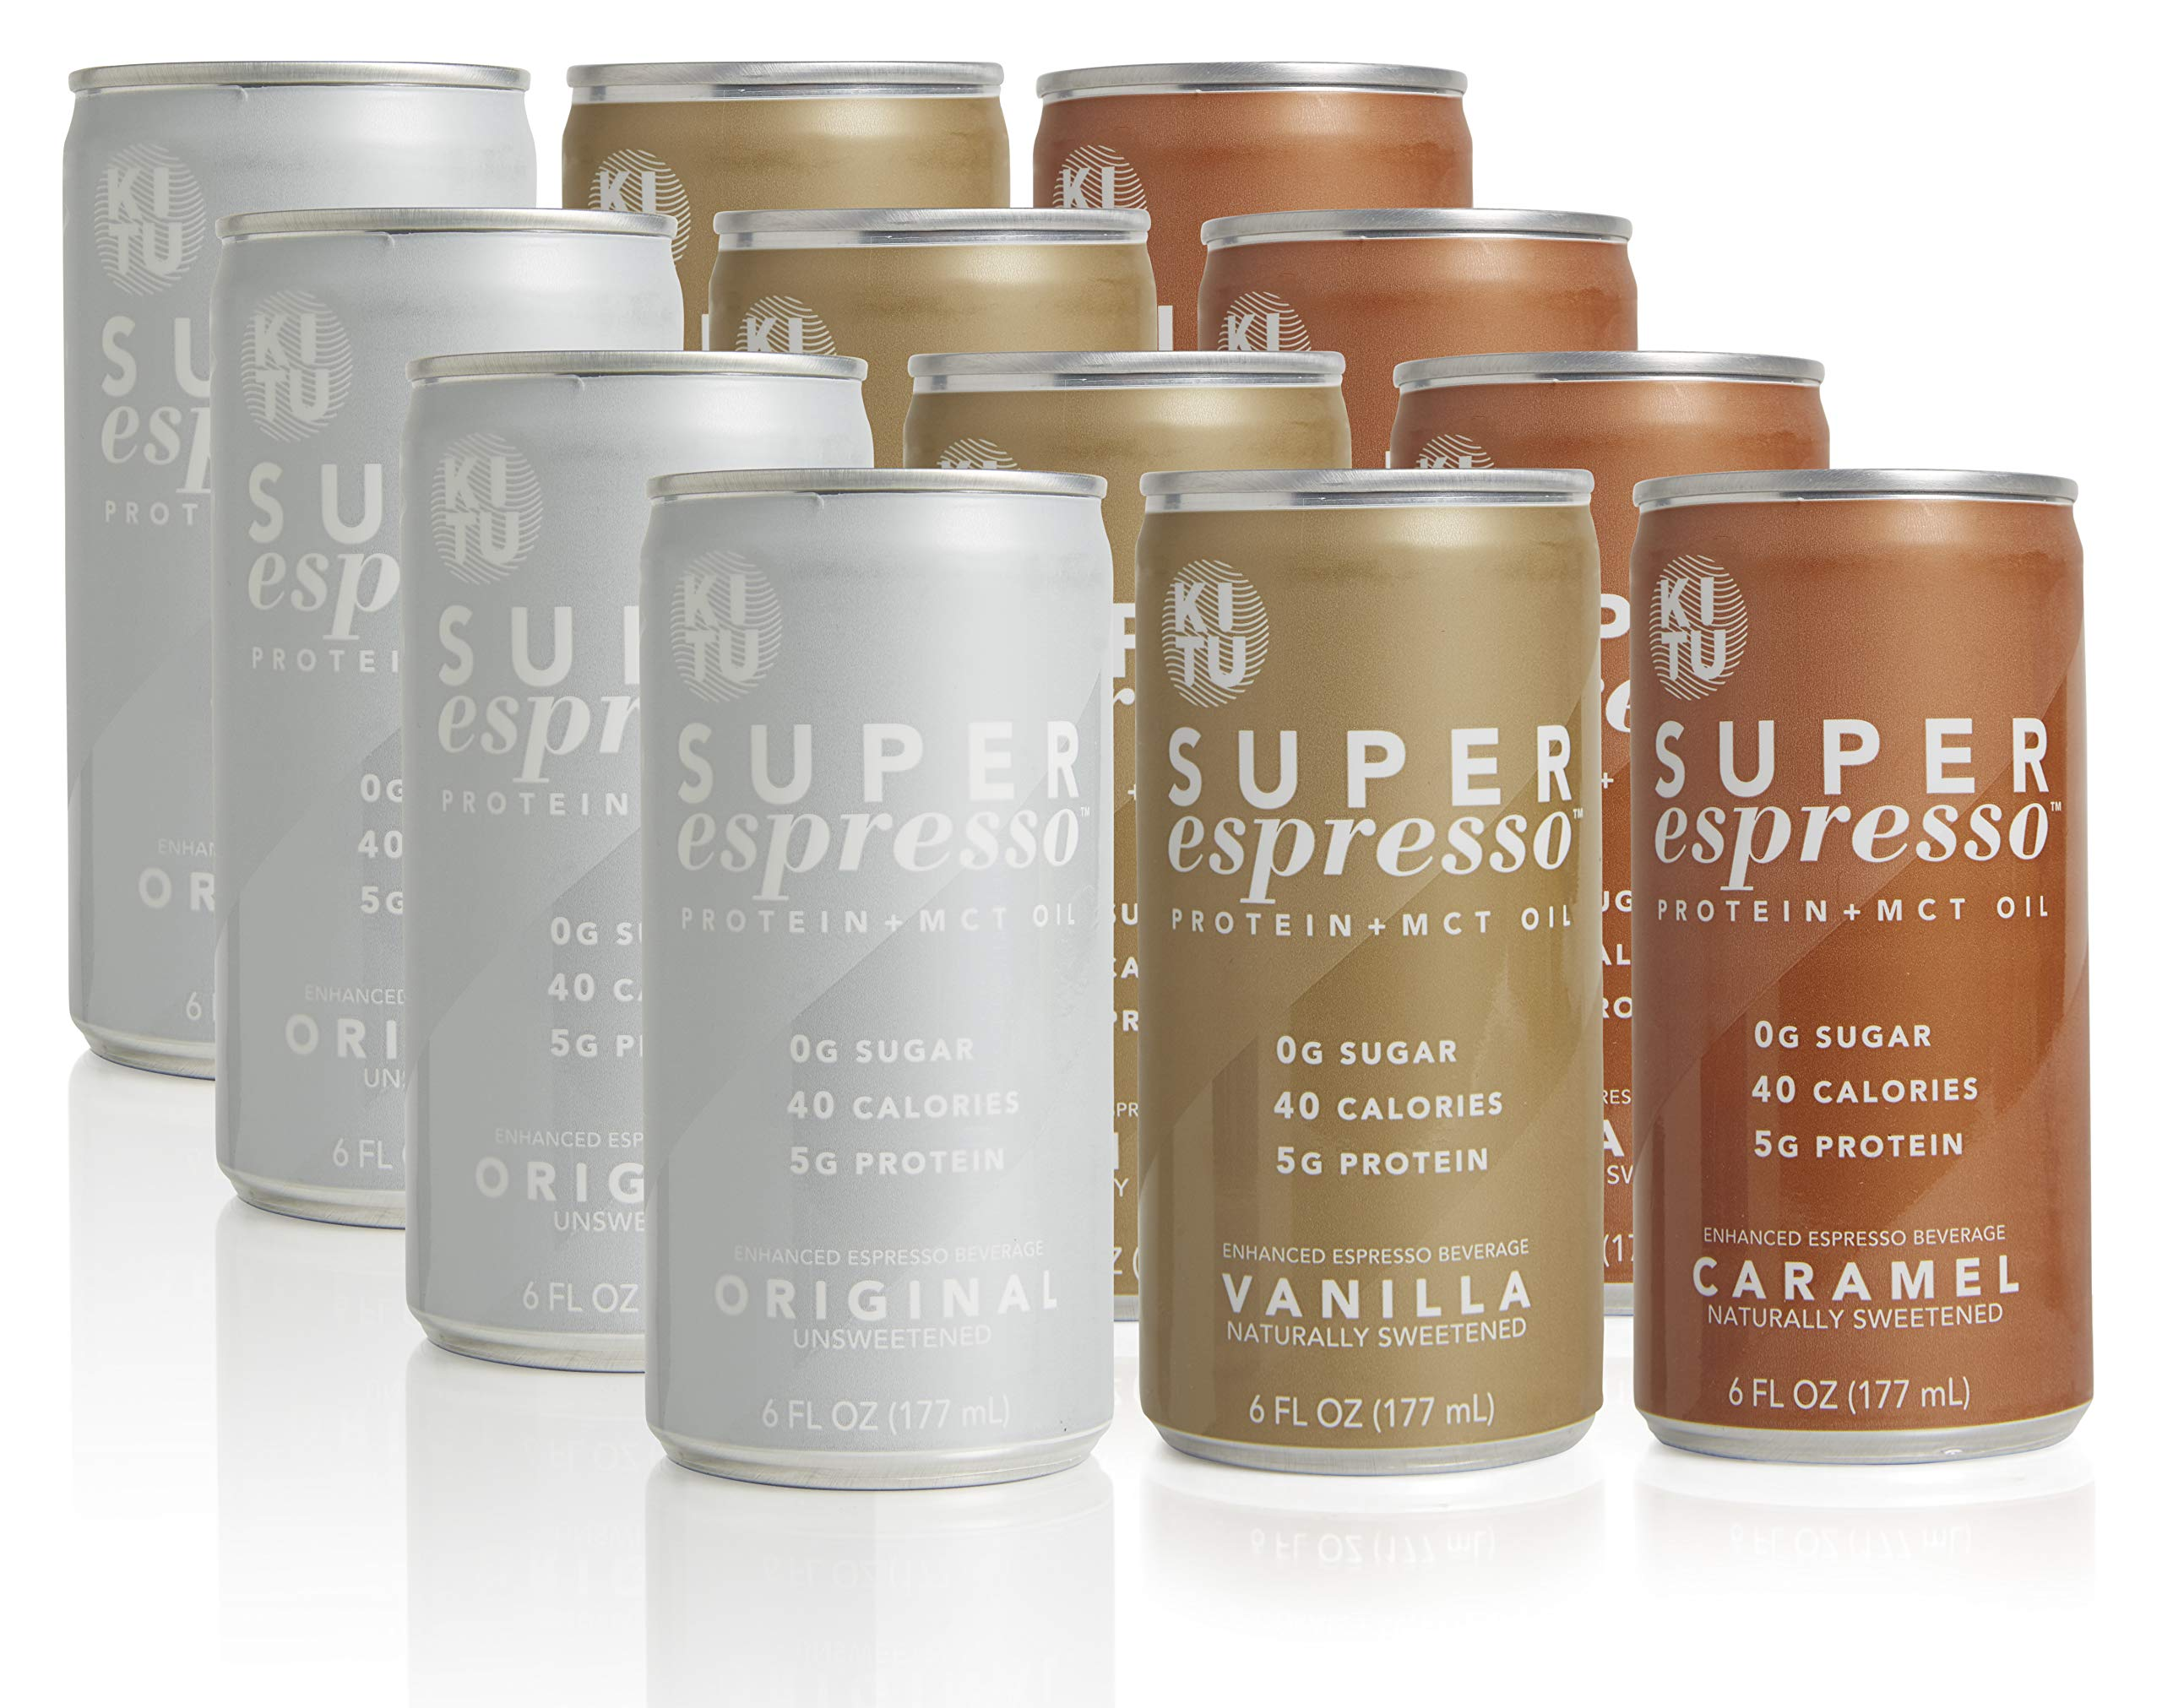 Kitu by SUNNIVA Super Espresso 12-Pack Variety with Protein and MCT Oil, Keto Approved, 0g Sugar, 5g Protein, 40 Calories, 6 fl. oz (4 Each of Original, Vanilla, and Caramel)